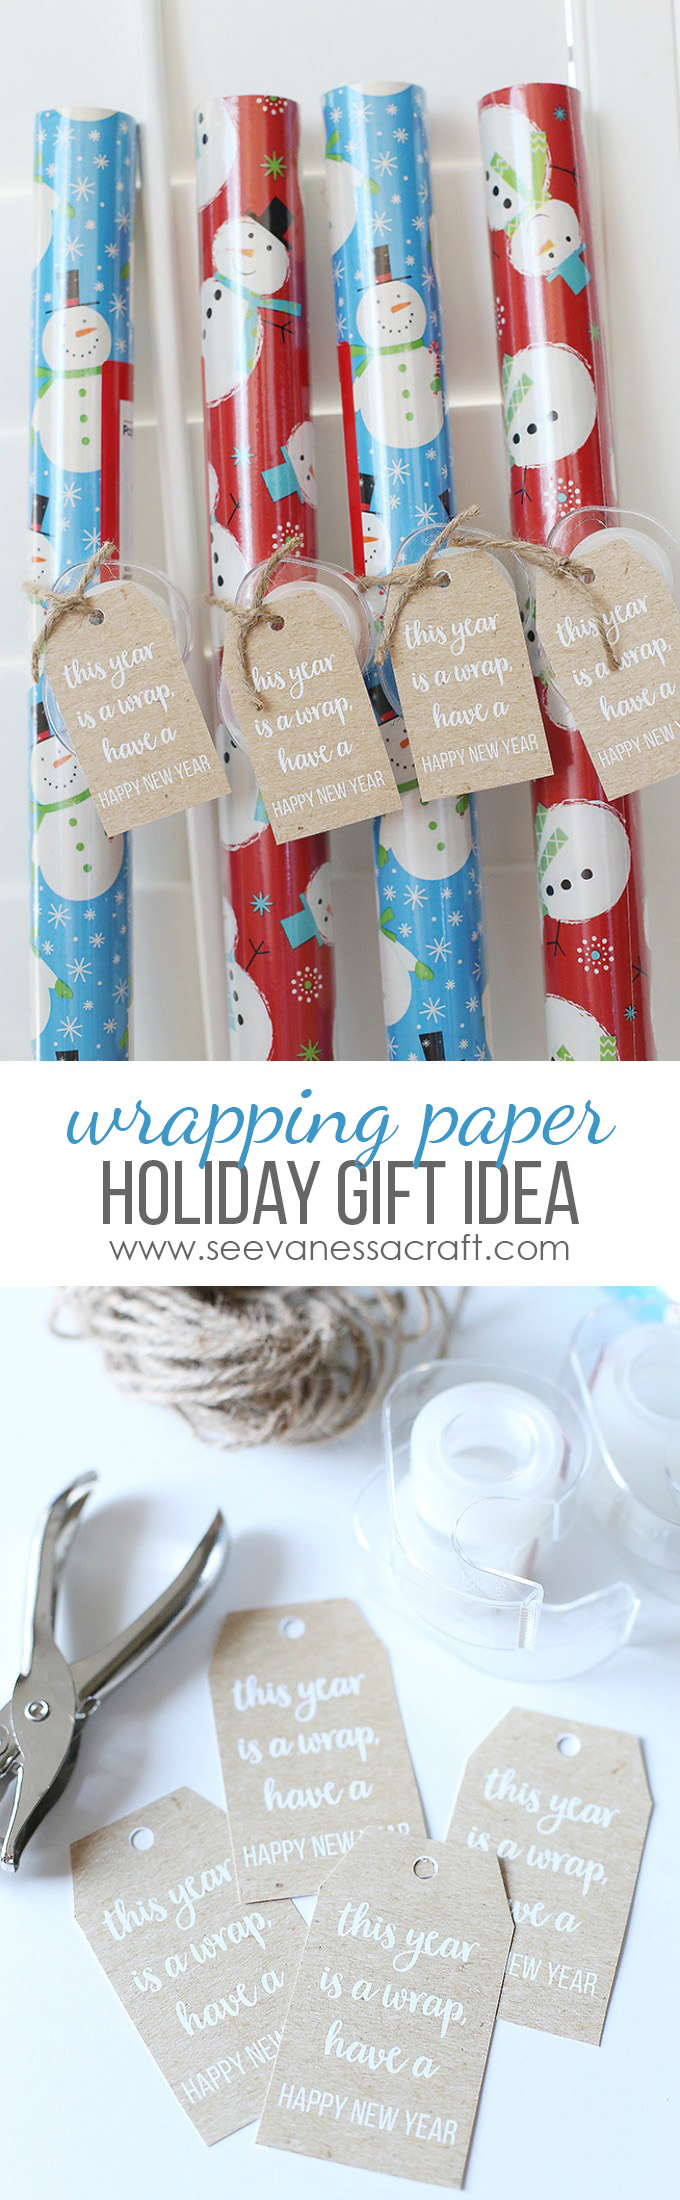 wrapping-paper-christmas-gift-idea-copy